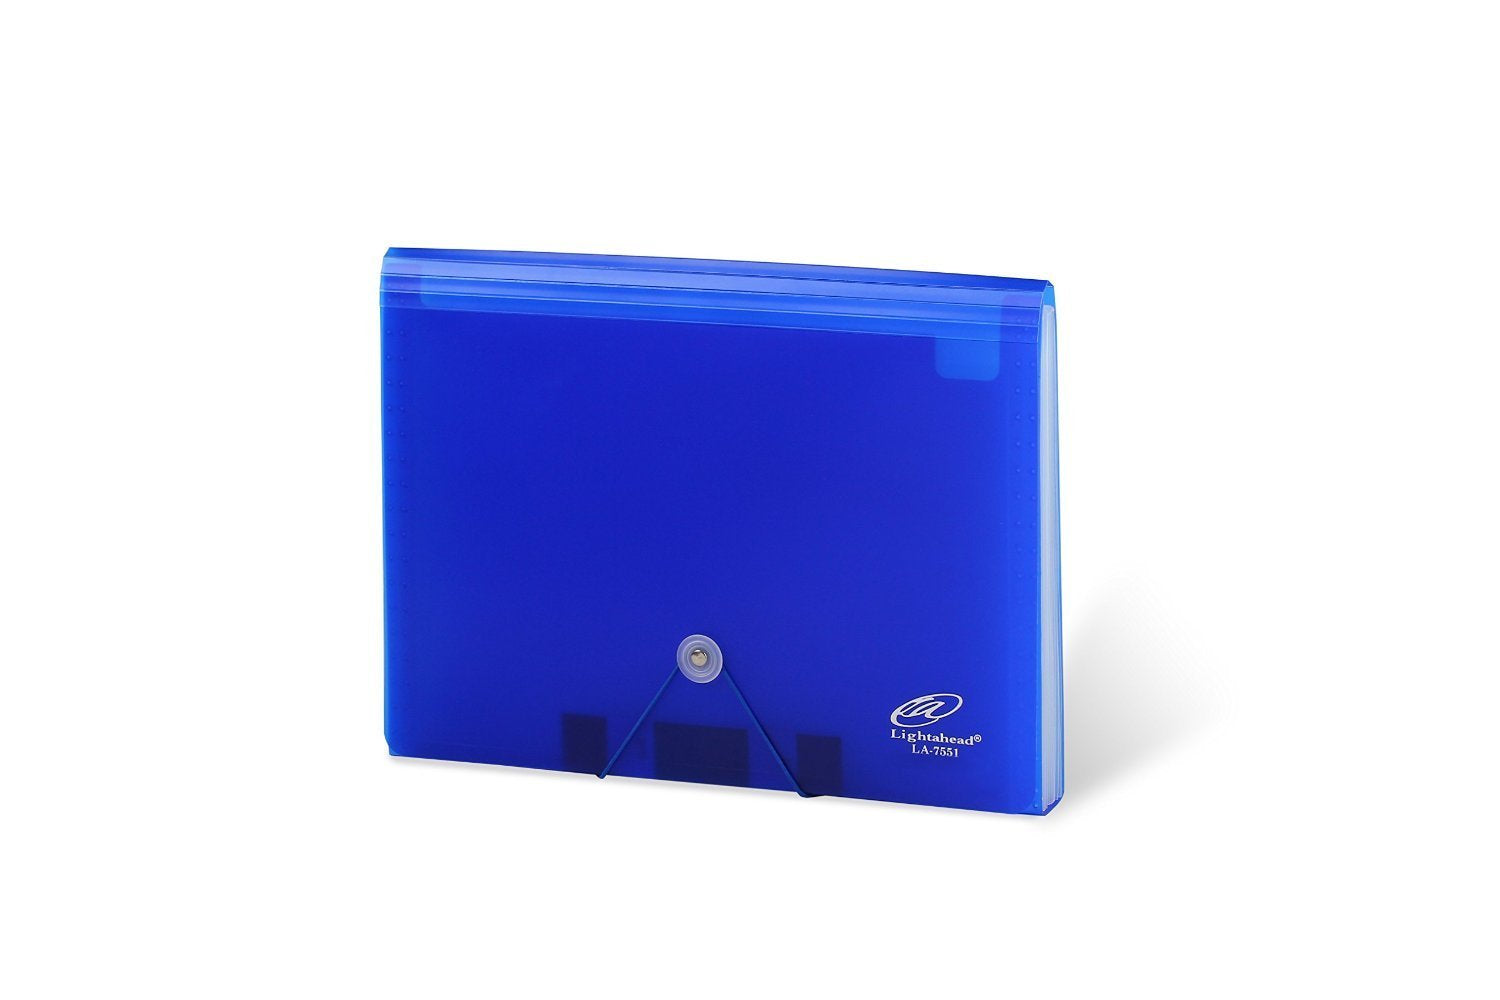 Lightahead LA-7551 Expanding file folder with 13 pockets Available in Colors Blue, Green (Blue)